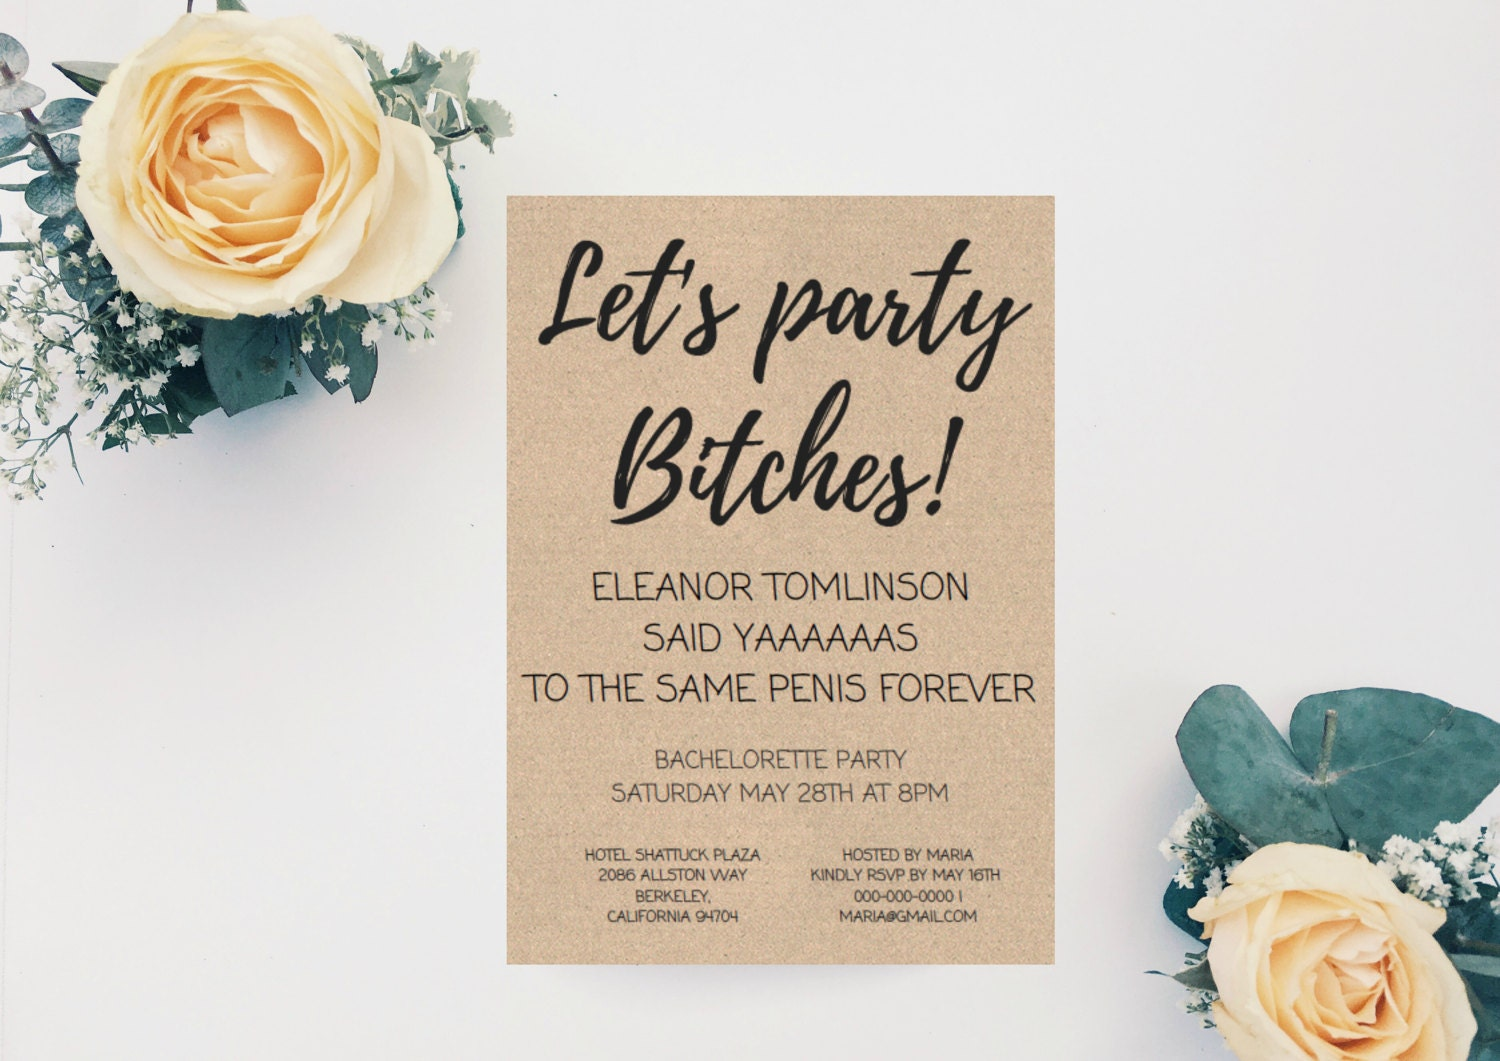 Bachelorette party invitation fun and naughty bachelorette zoom monicamarmolfo Image collections